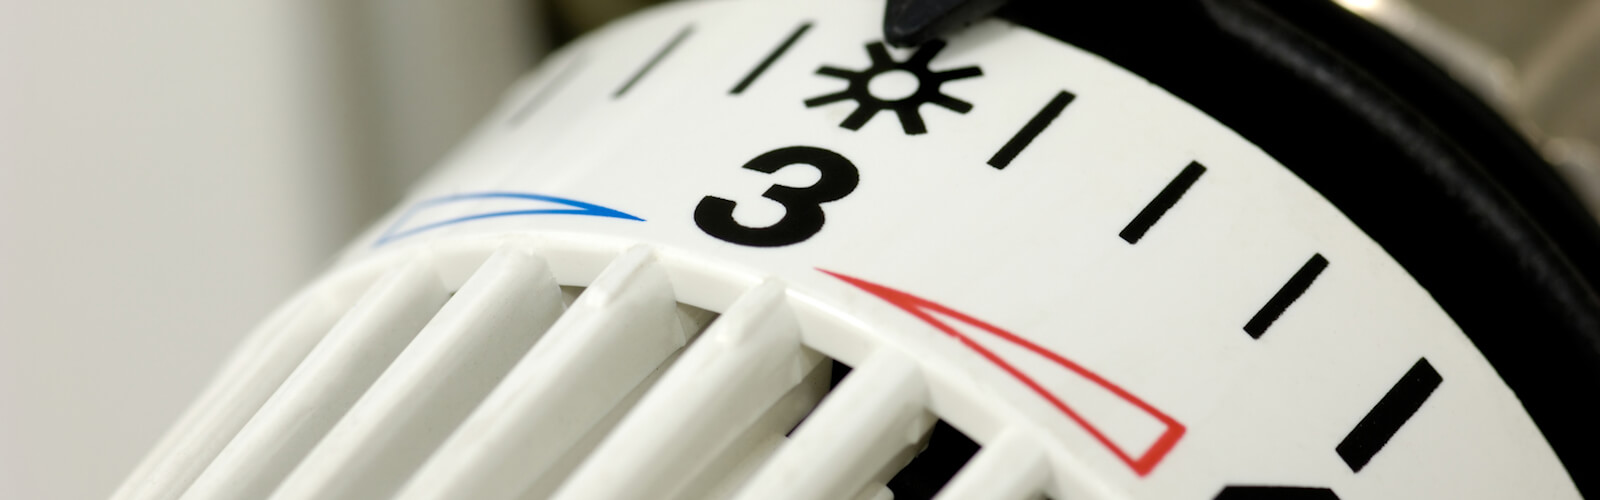 Reliable Central Heating Experts